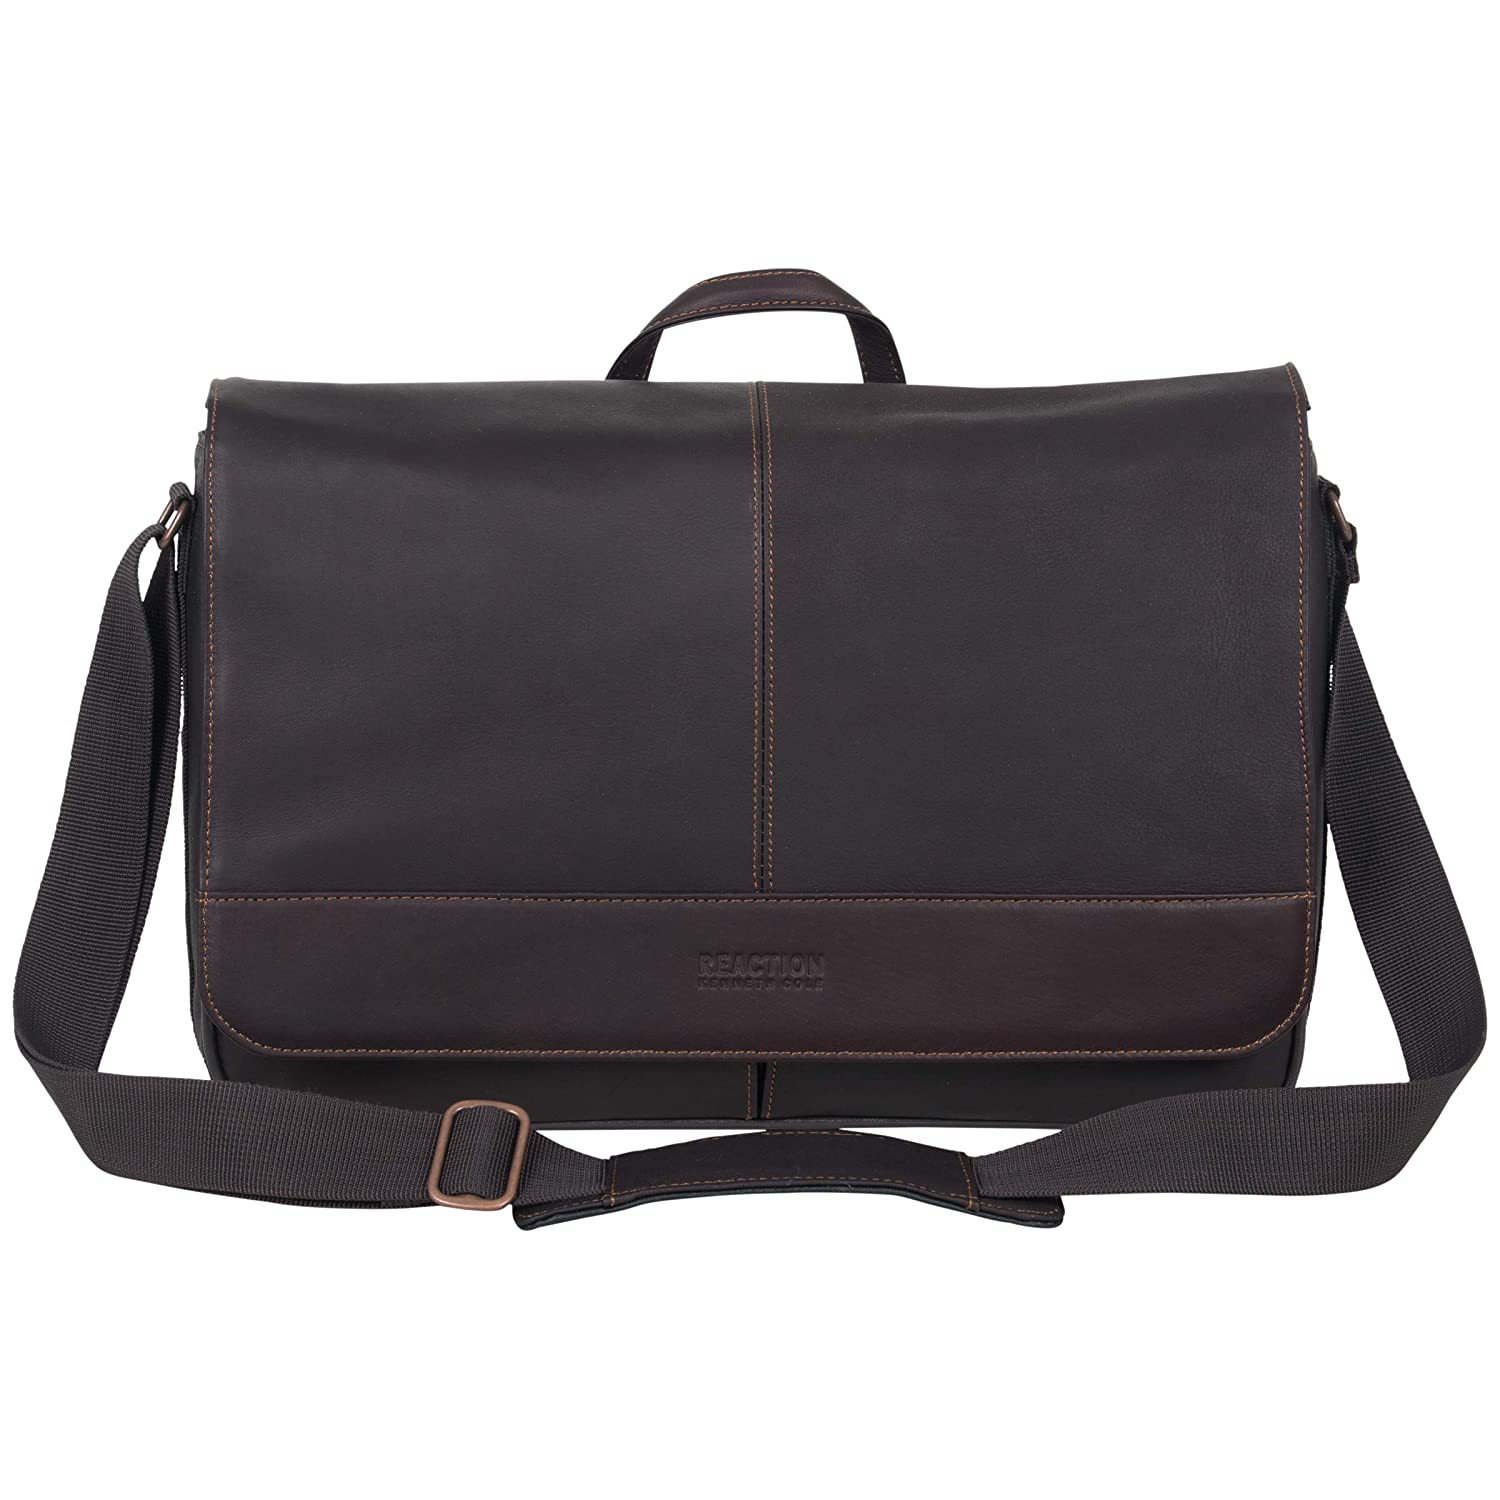 "Kenneth Cole Reaction Come Bag Soon Colombian Leather 15.6"" Laptop & Tablet RFID Messenger Travel Bag"